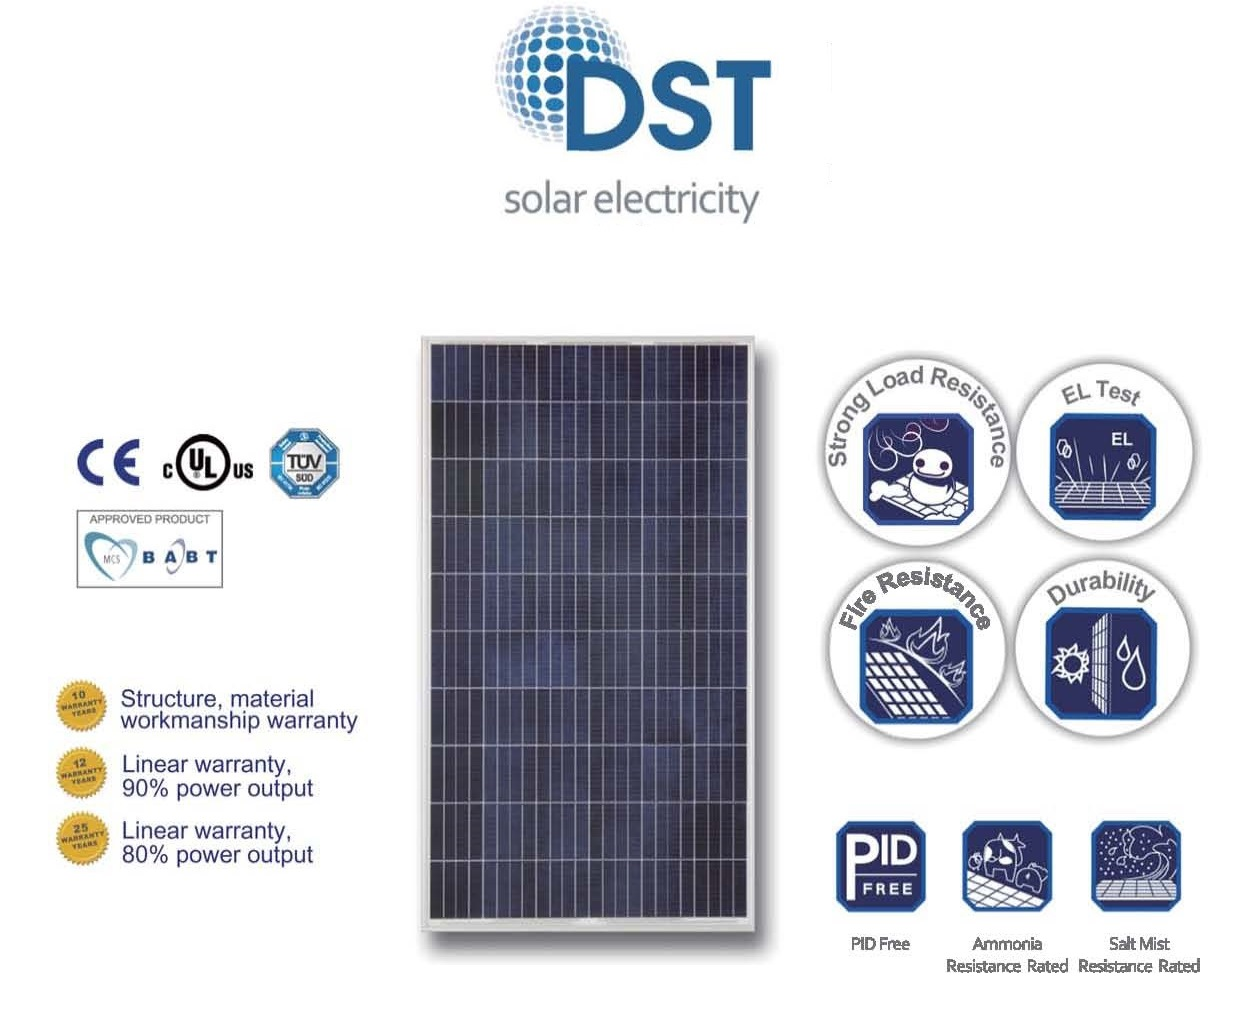 DS TECHNOLOGY SOLAR PANELS